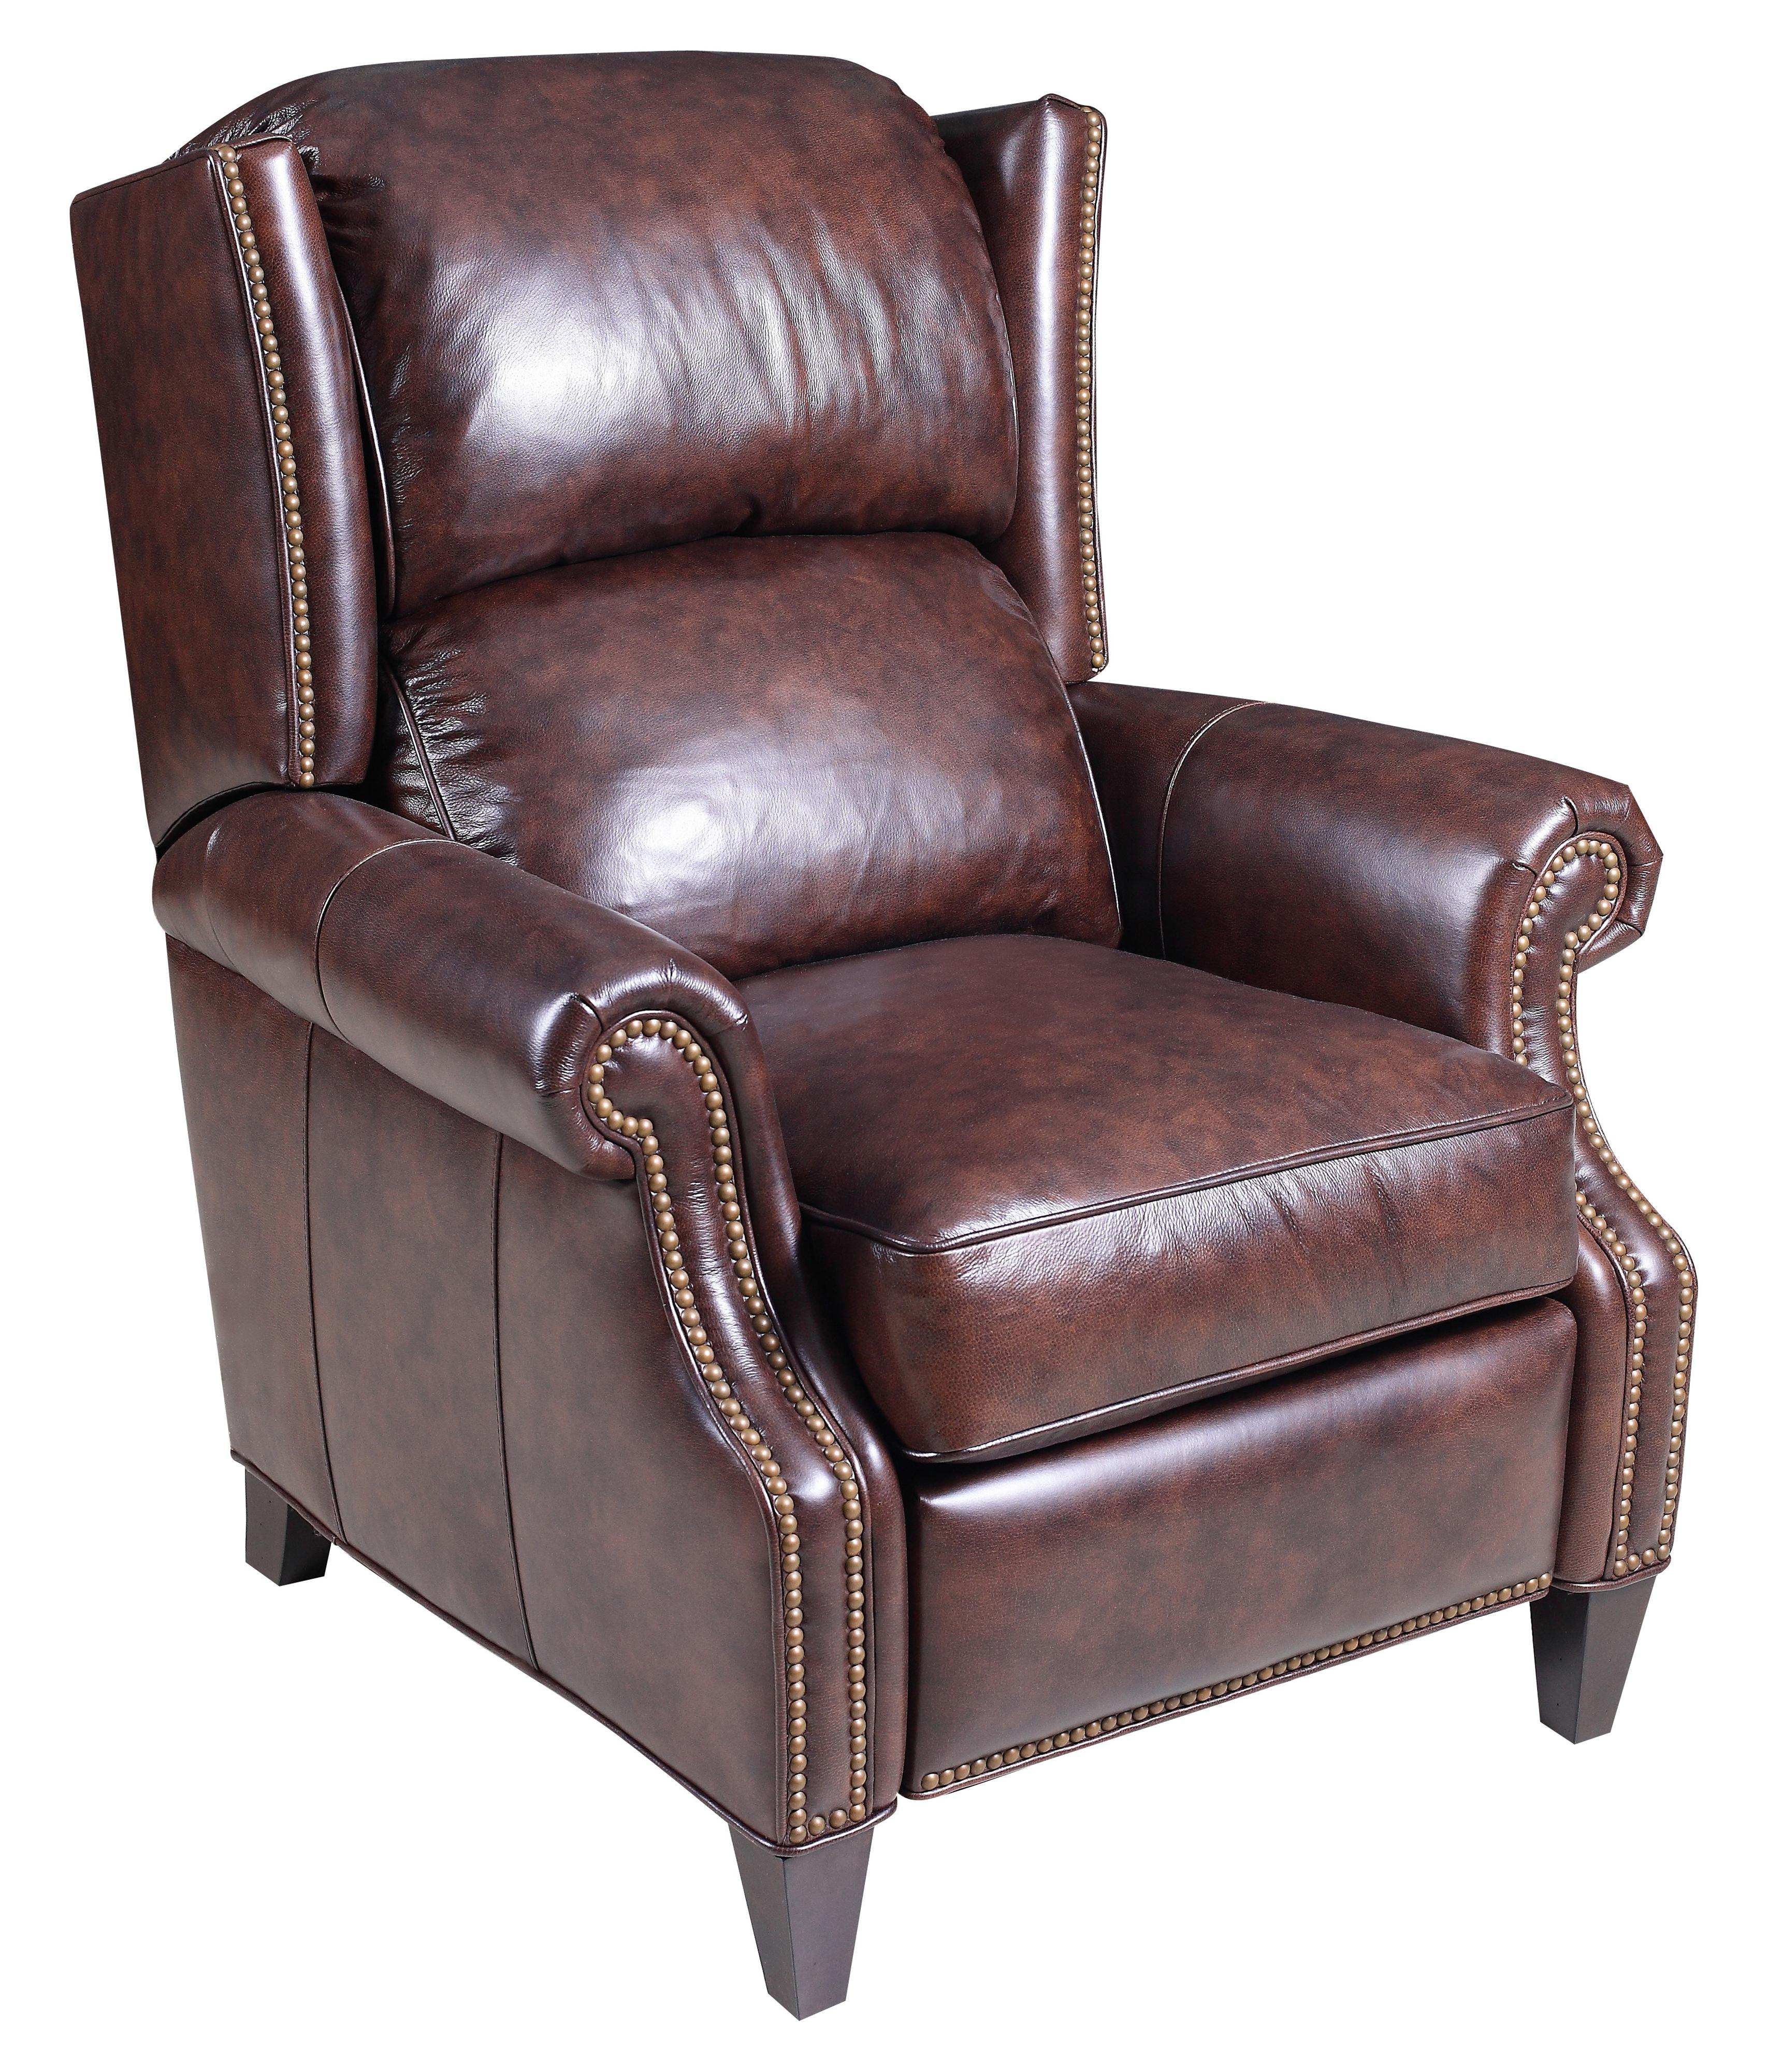 High leg reclining chairs - Reclining Chairs Transitional High Leg Recliner With Wing Back And Nailhead Studs By Hooker Furniture